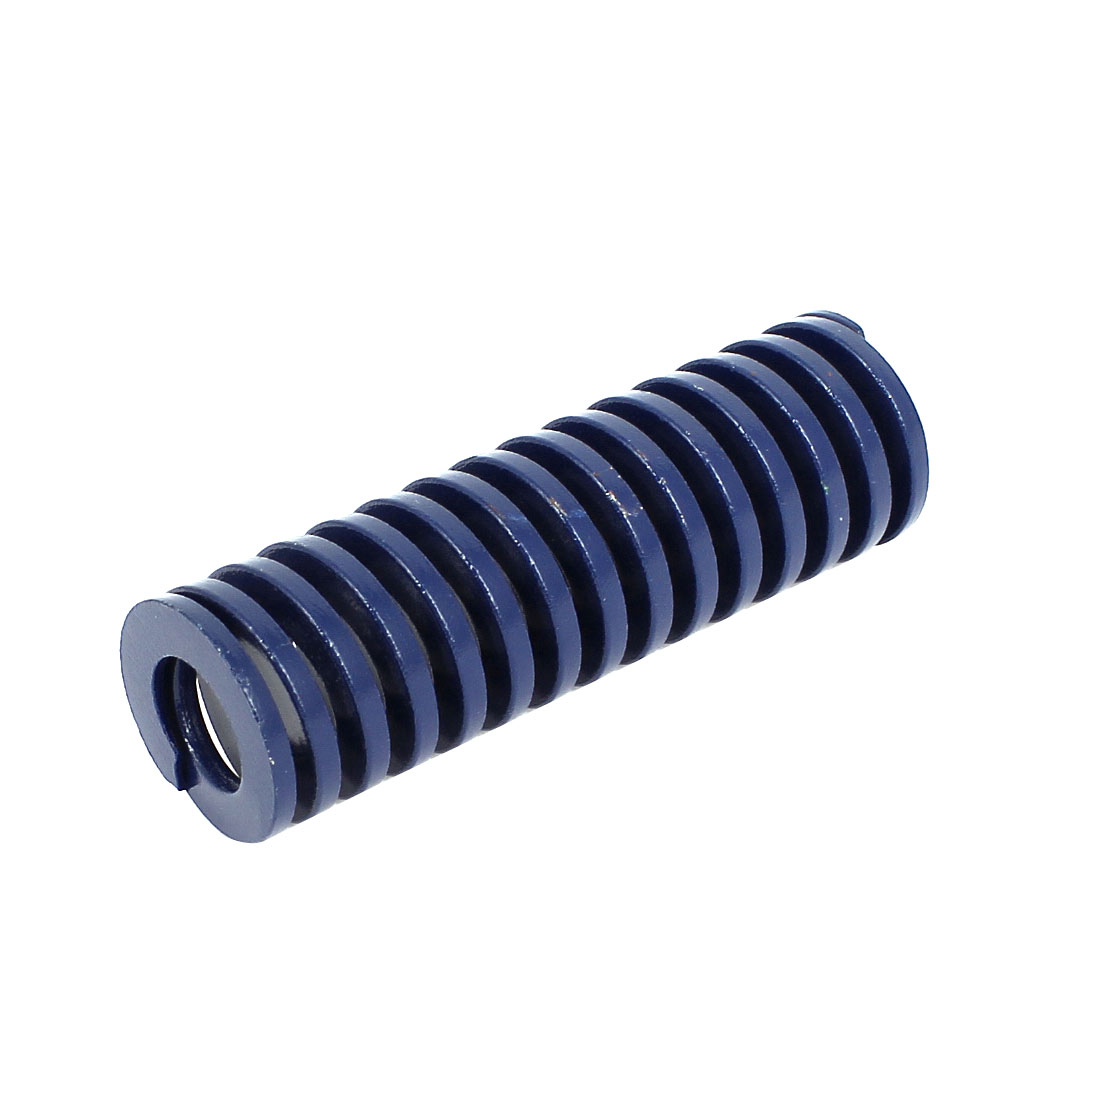 25mm OD 80mm Long Coil Light Load Stamping Compression Mold Die Spring Blue